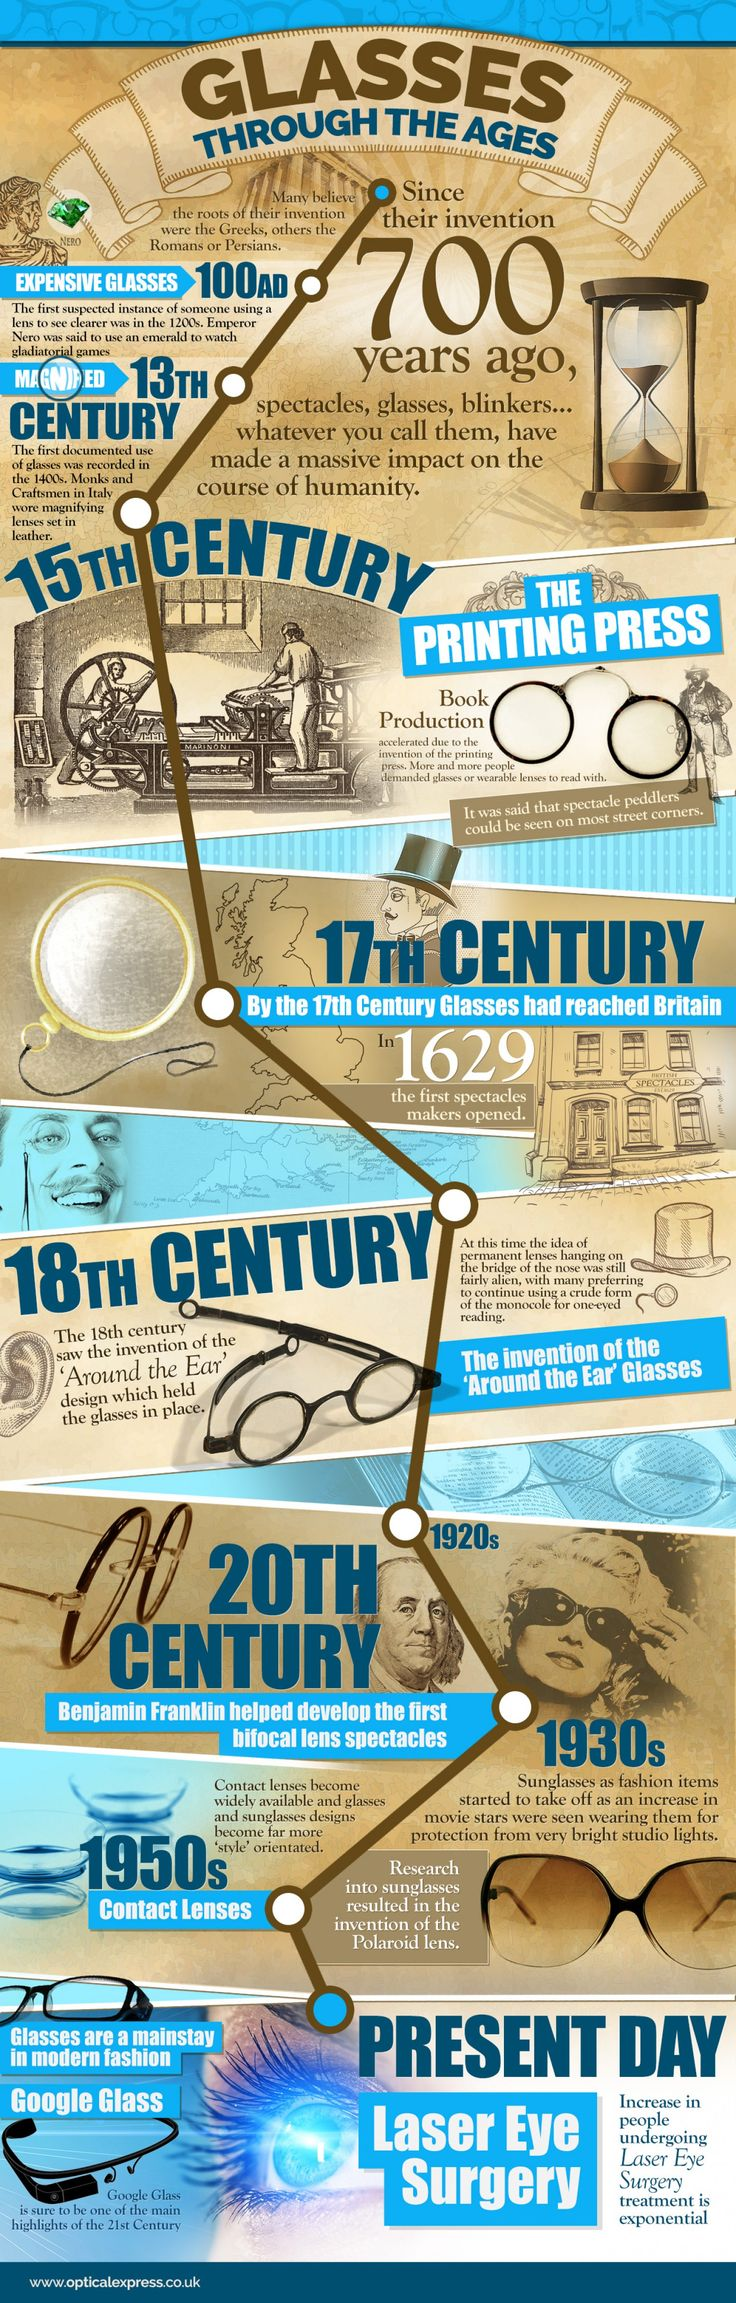 Glasses: Through The Ages Infographic! Follow us on FaceBook @ www.facebook.com/eyecarefortcollins.com or visit us at www.eyecarefortcollins.com